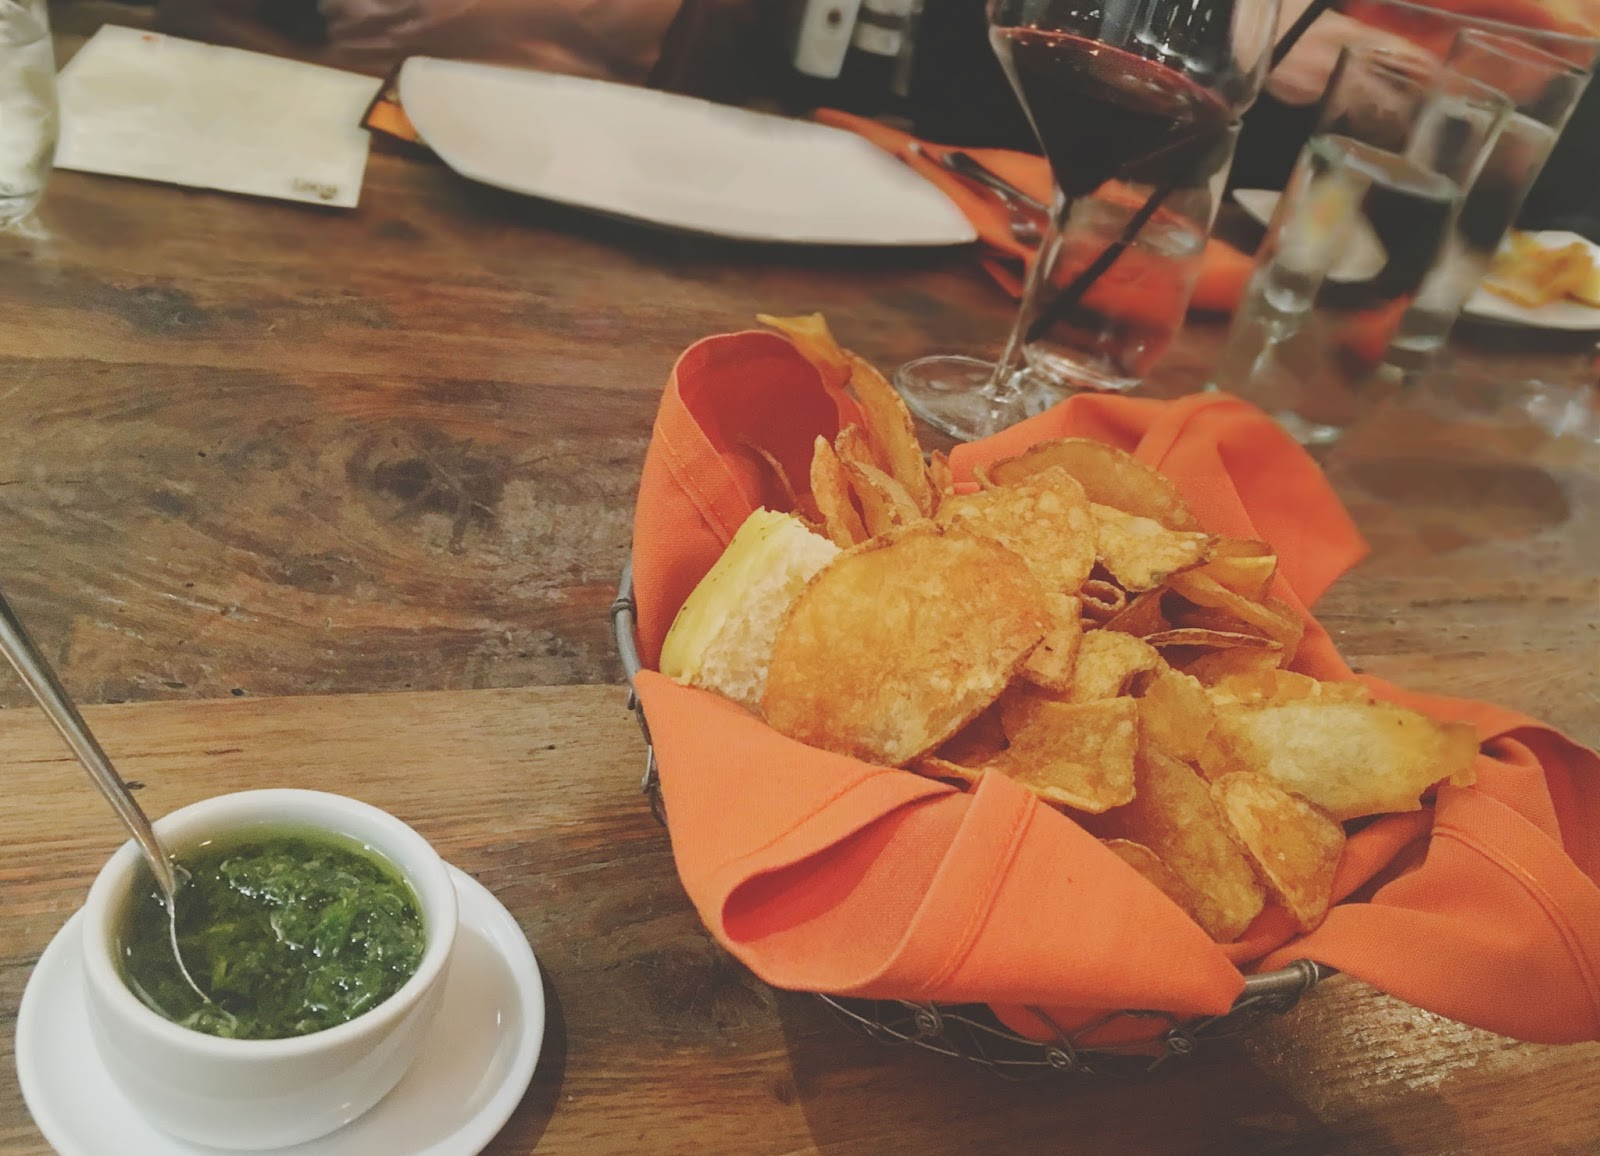 chips at Sal y Pimienta - A South American restaurant in Houston